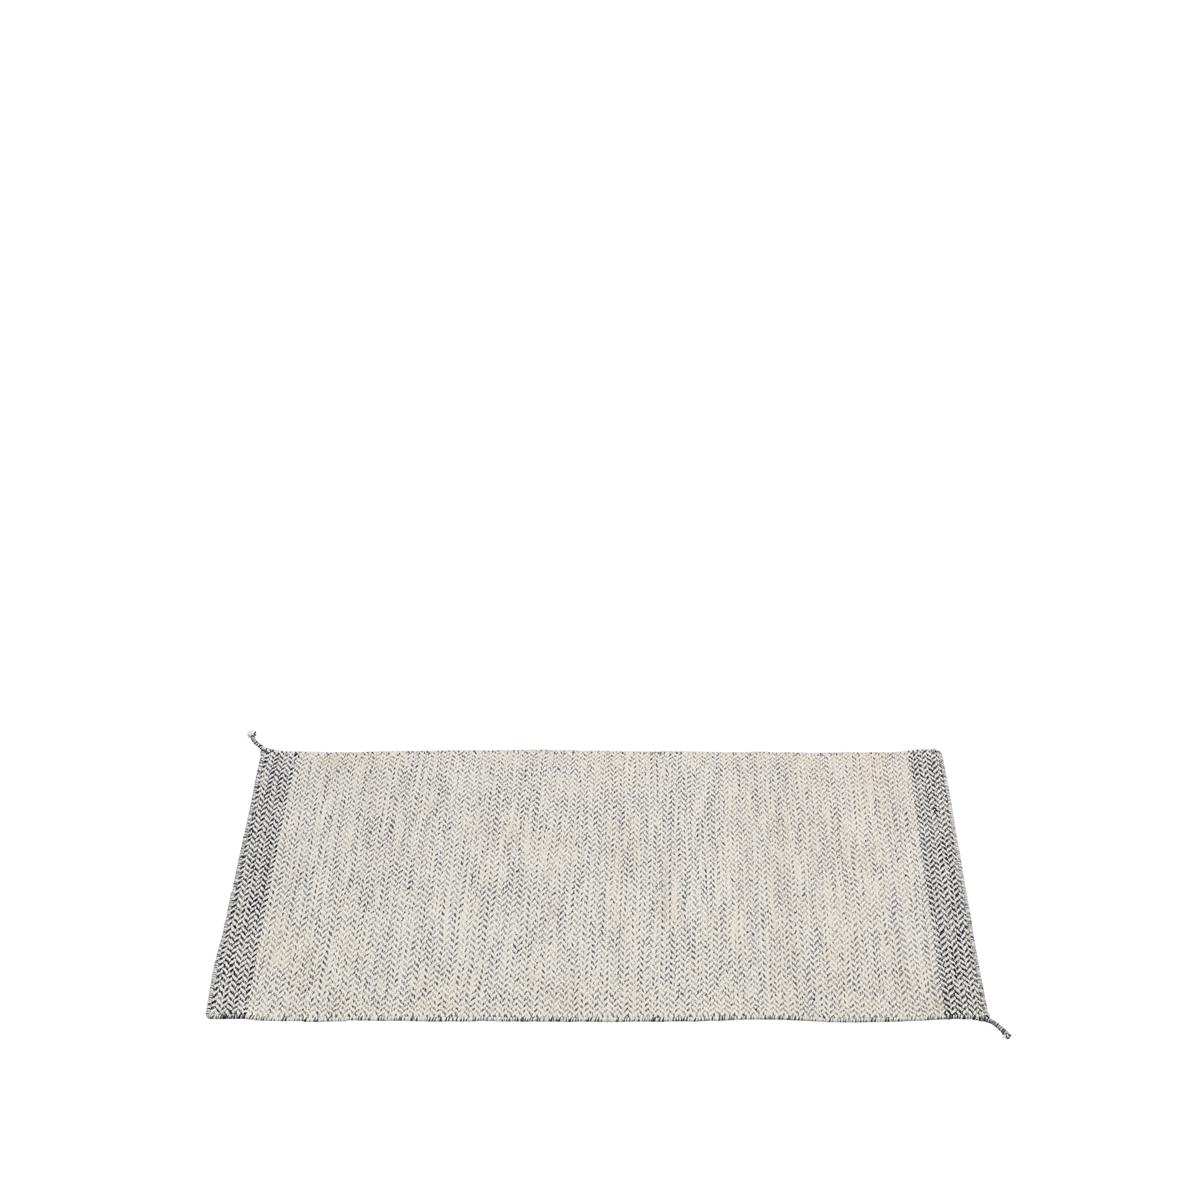 Ply Rug i 85 X 140 cm, Off-white